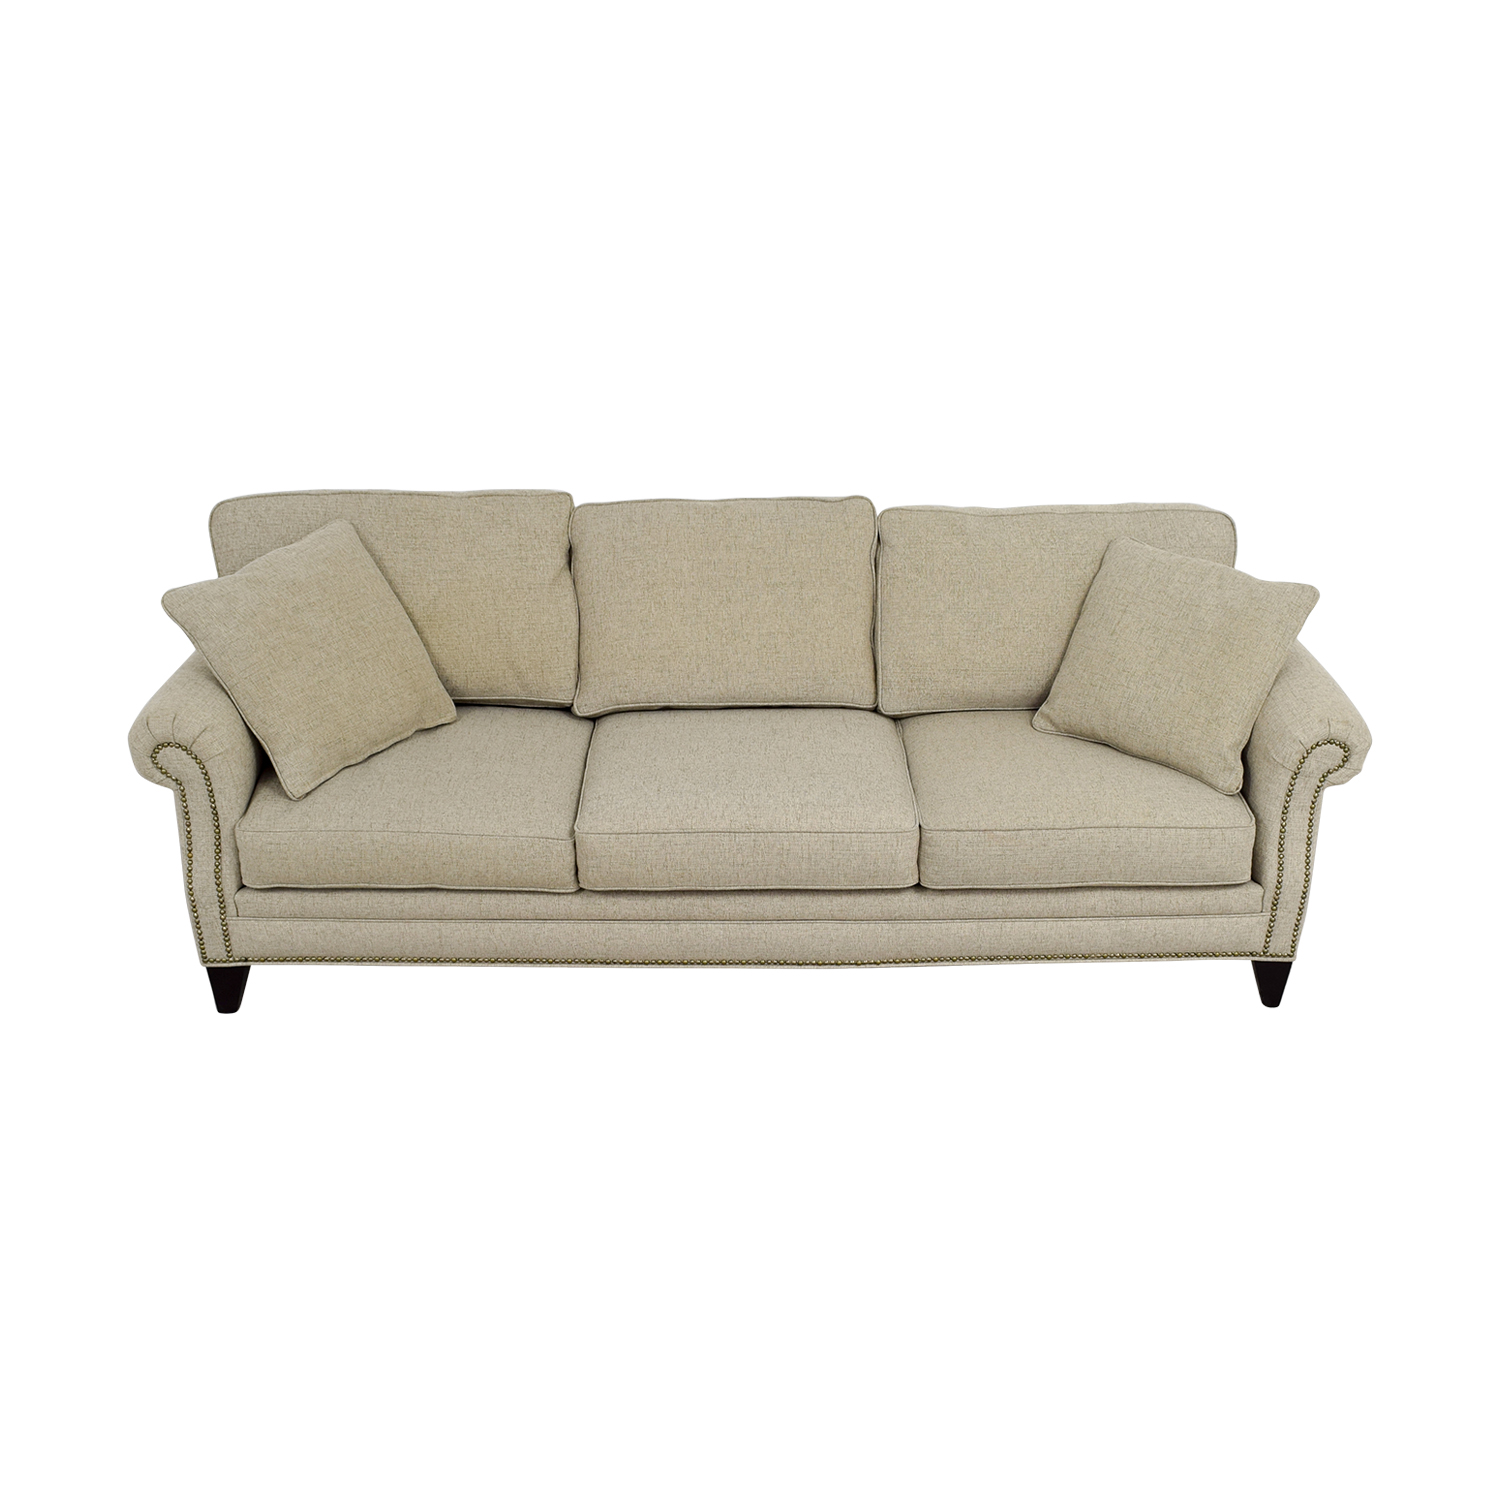 Macy's Macy's Grey Fabric Nailhead Sofa Sofas